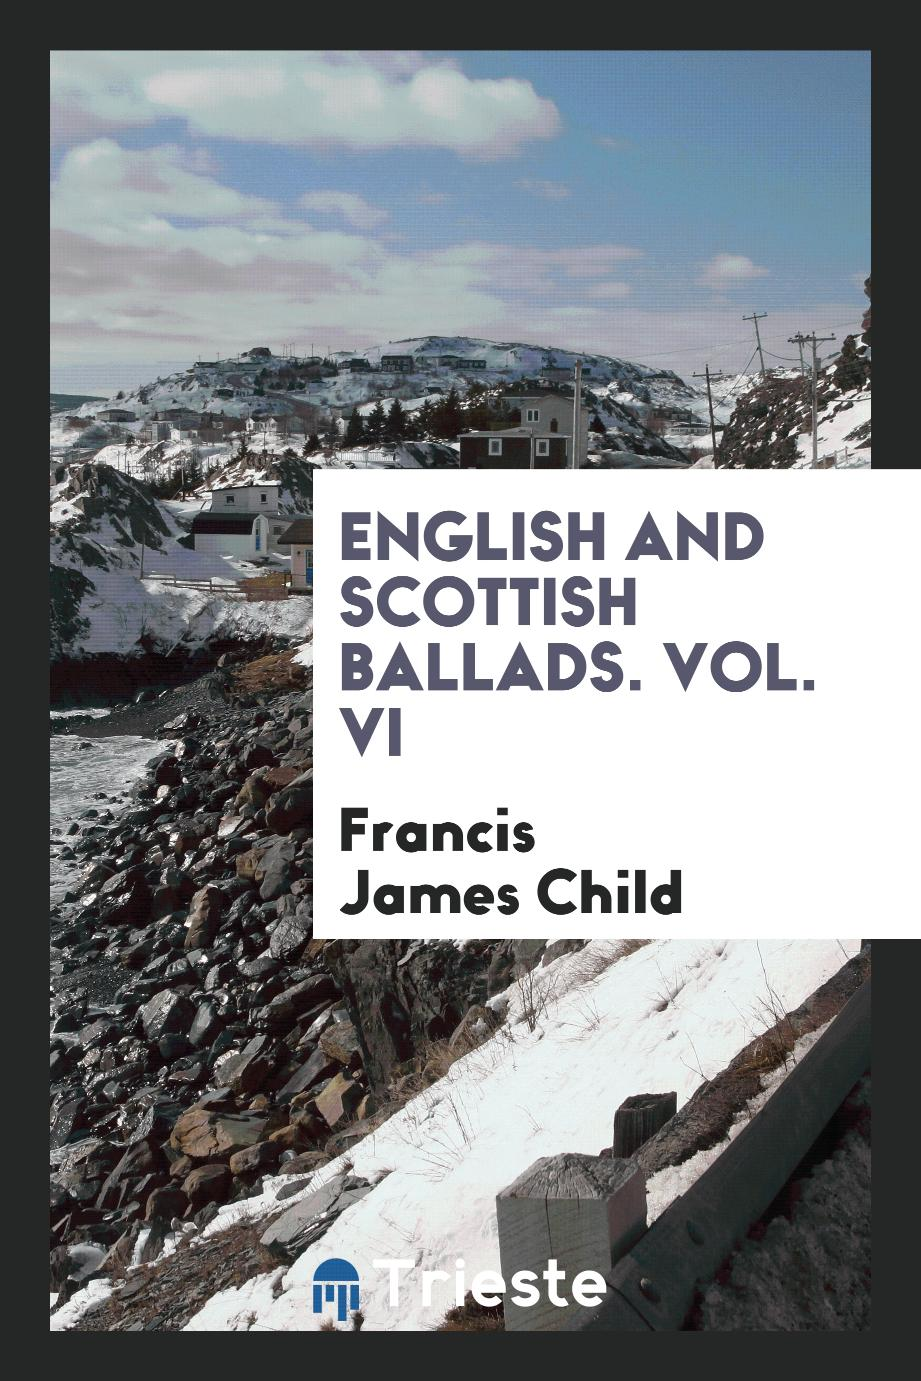 English and Scottish Ballads. Vol. VI